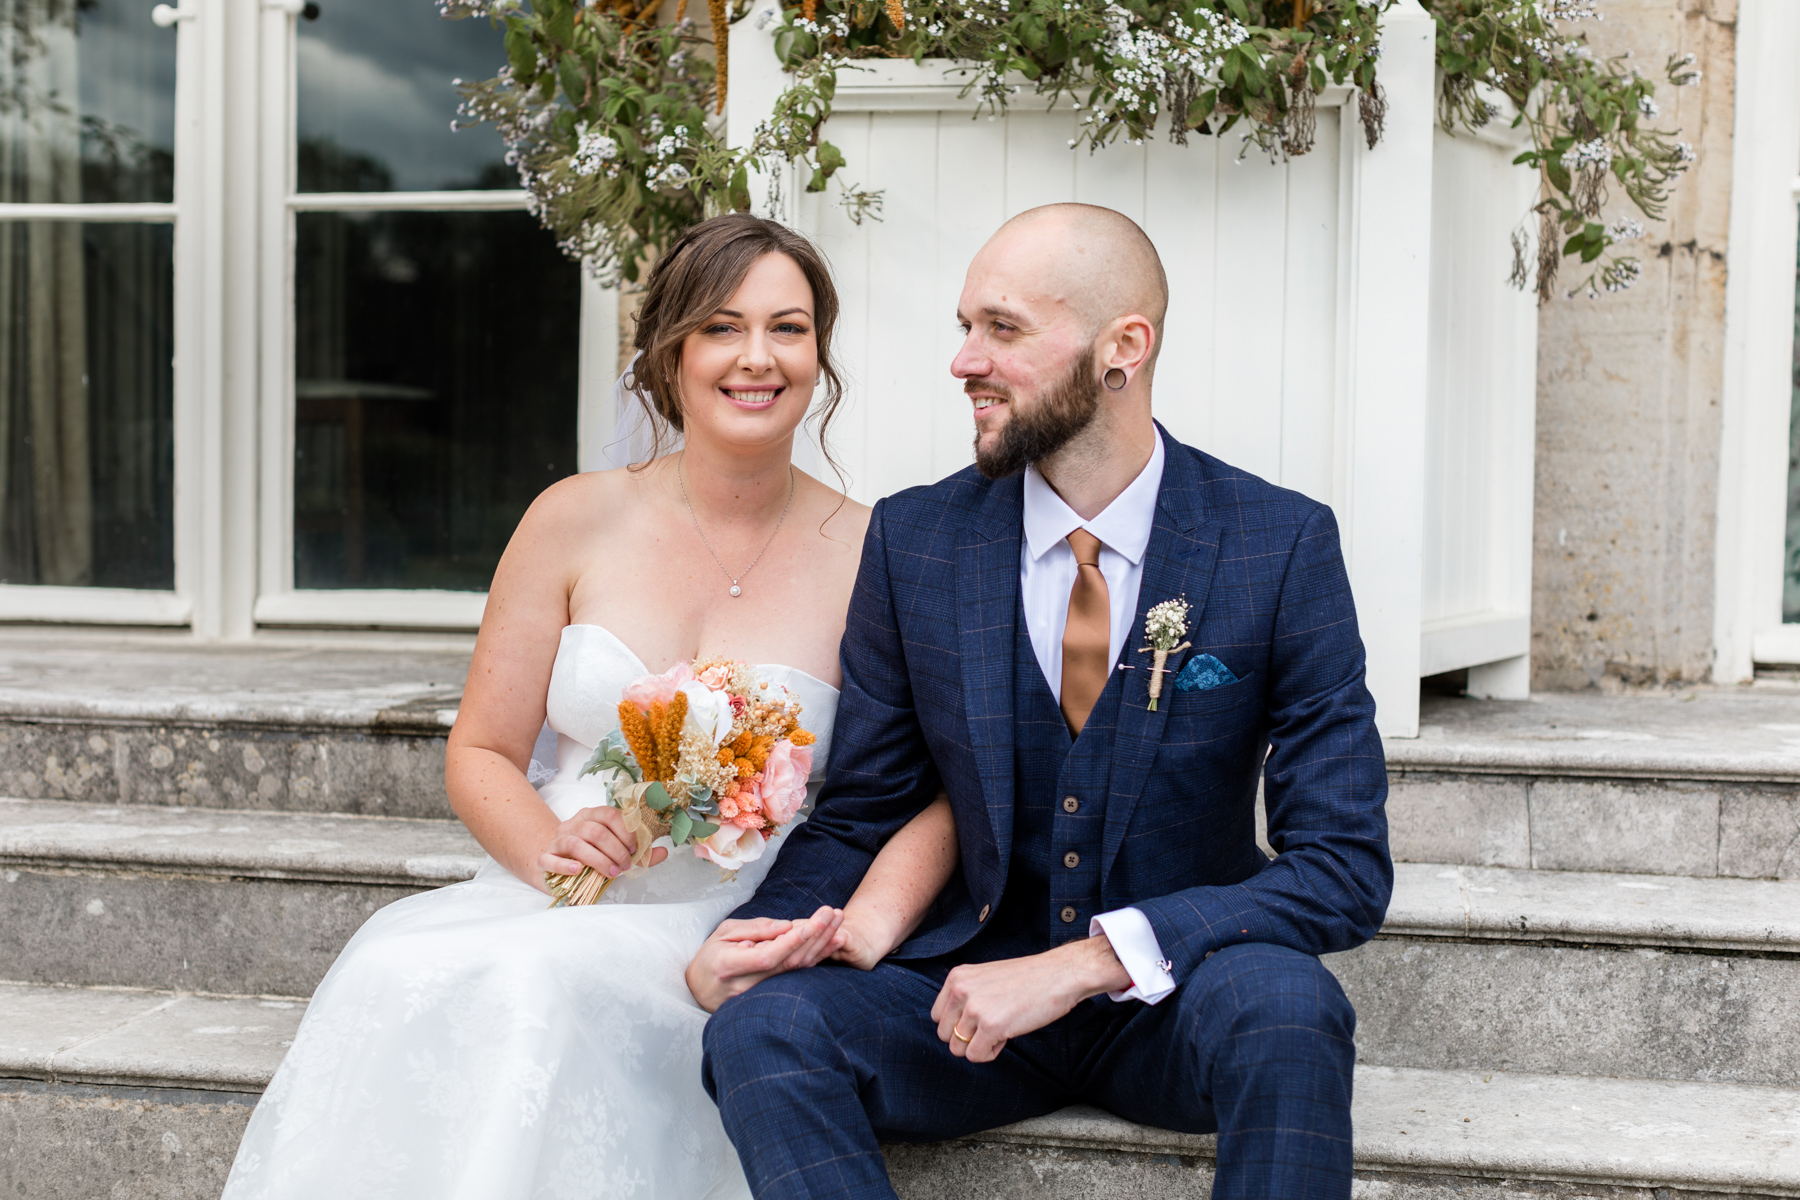 Couple smiling after marrying